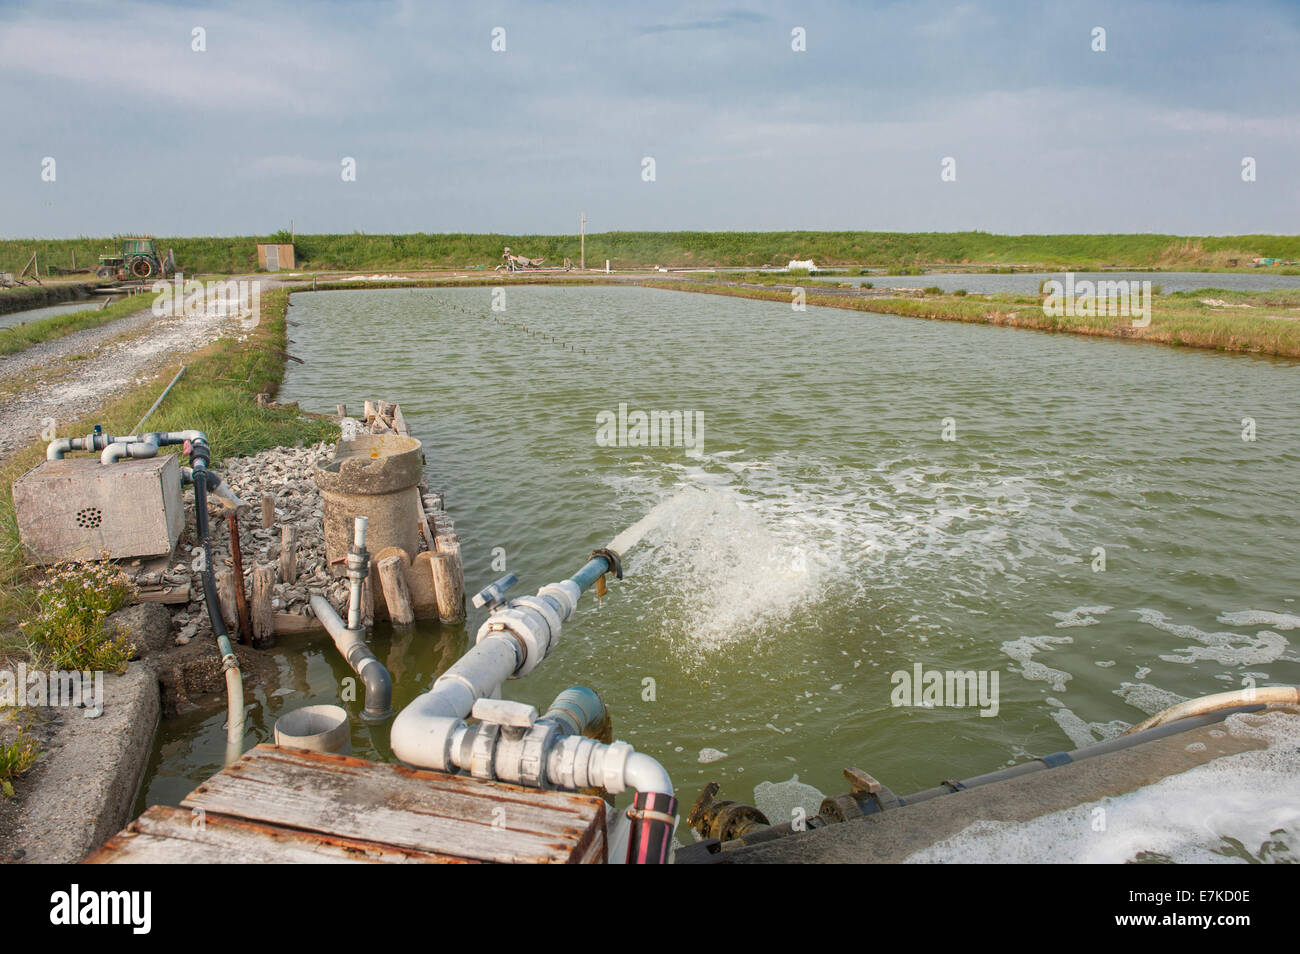 Watering basins for oysters at Vivier-sur-mer, Brittany, France - Stock Image